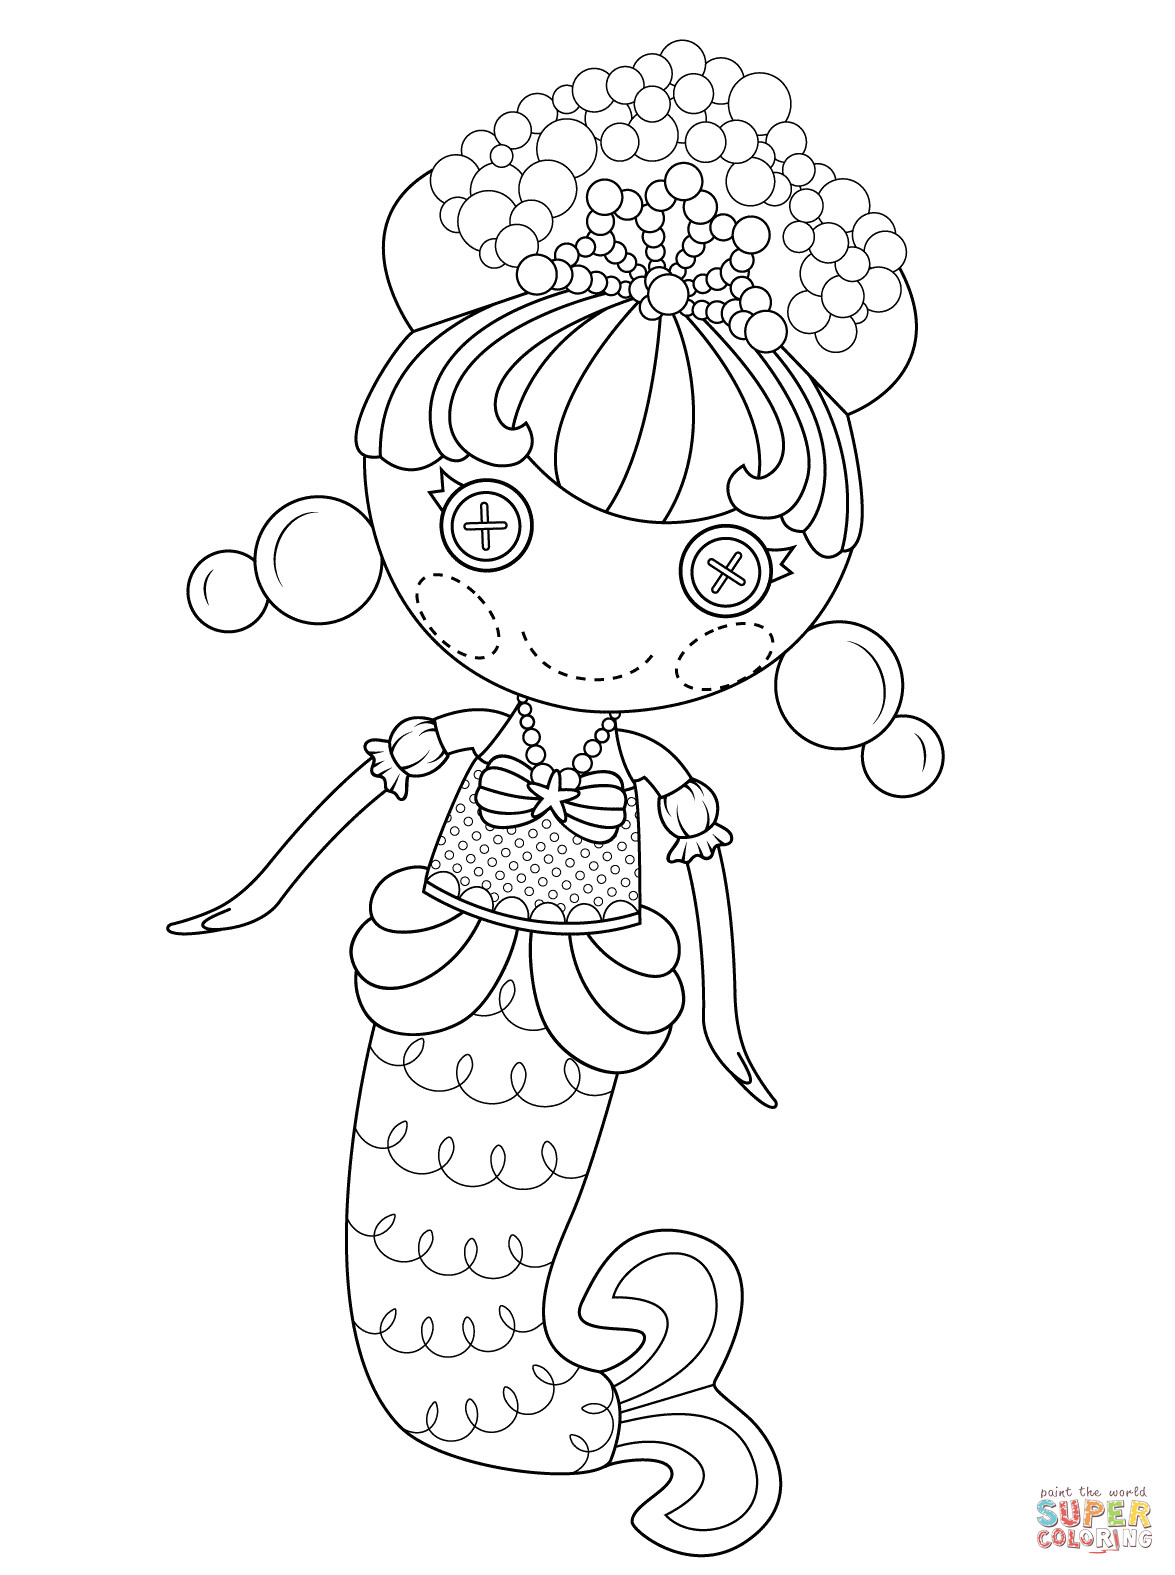 Lalaloopsy Printable Coloring Sheets  Lalaloopsy Bubbly Mermaid coloring page